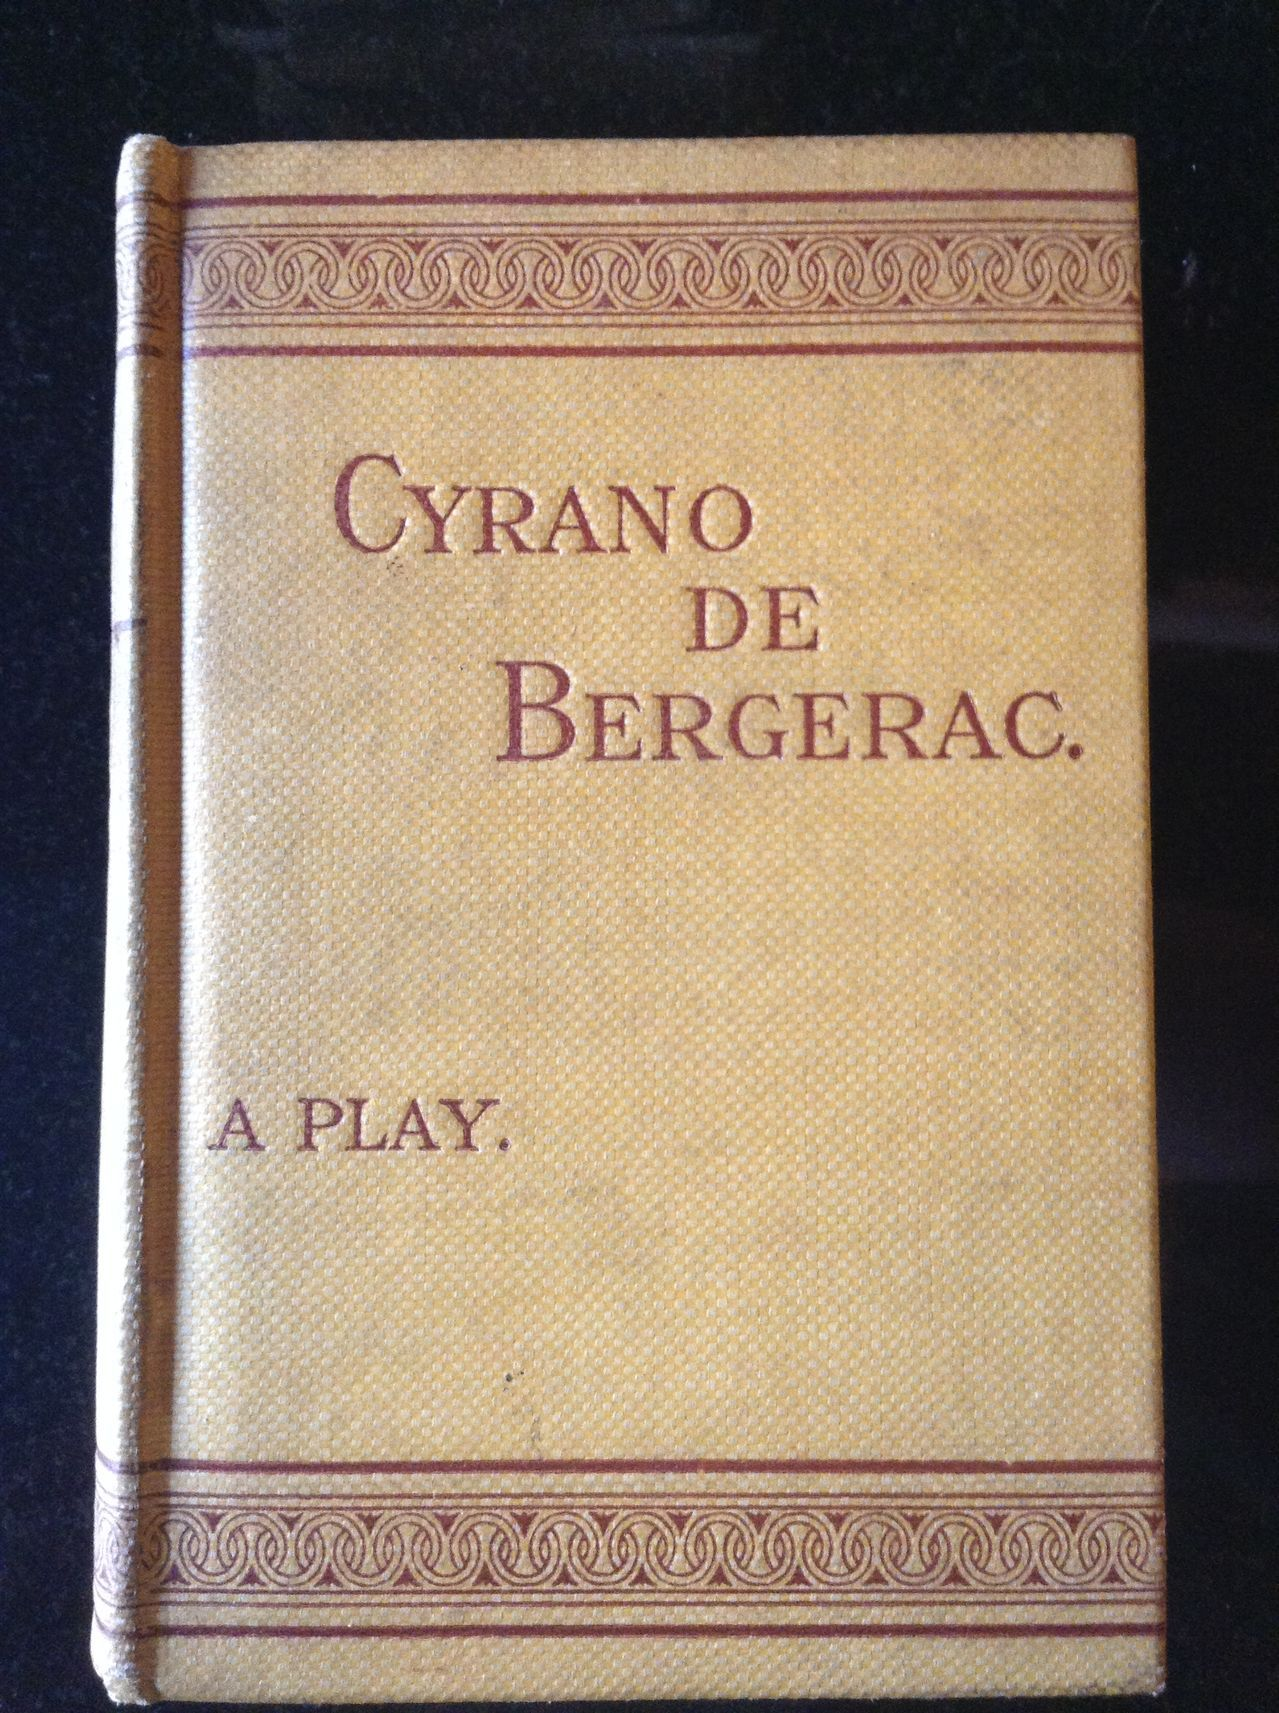 a review of cyrano de bergerac a book by edmond rostand Cyrano de bergerac user review - not available - book verdict gr 7 up-in this adaptation of edmond rostand's cyrano de bergerac, the st charles players, utilizing background music and clear voices, successfully bring cyrano's story to listeners.